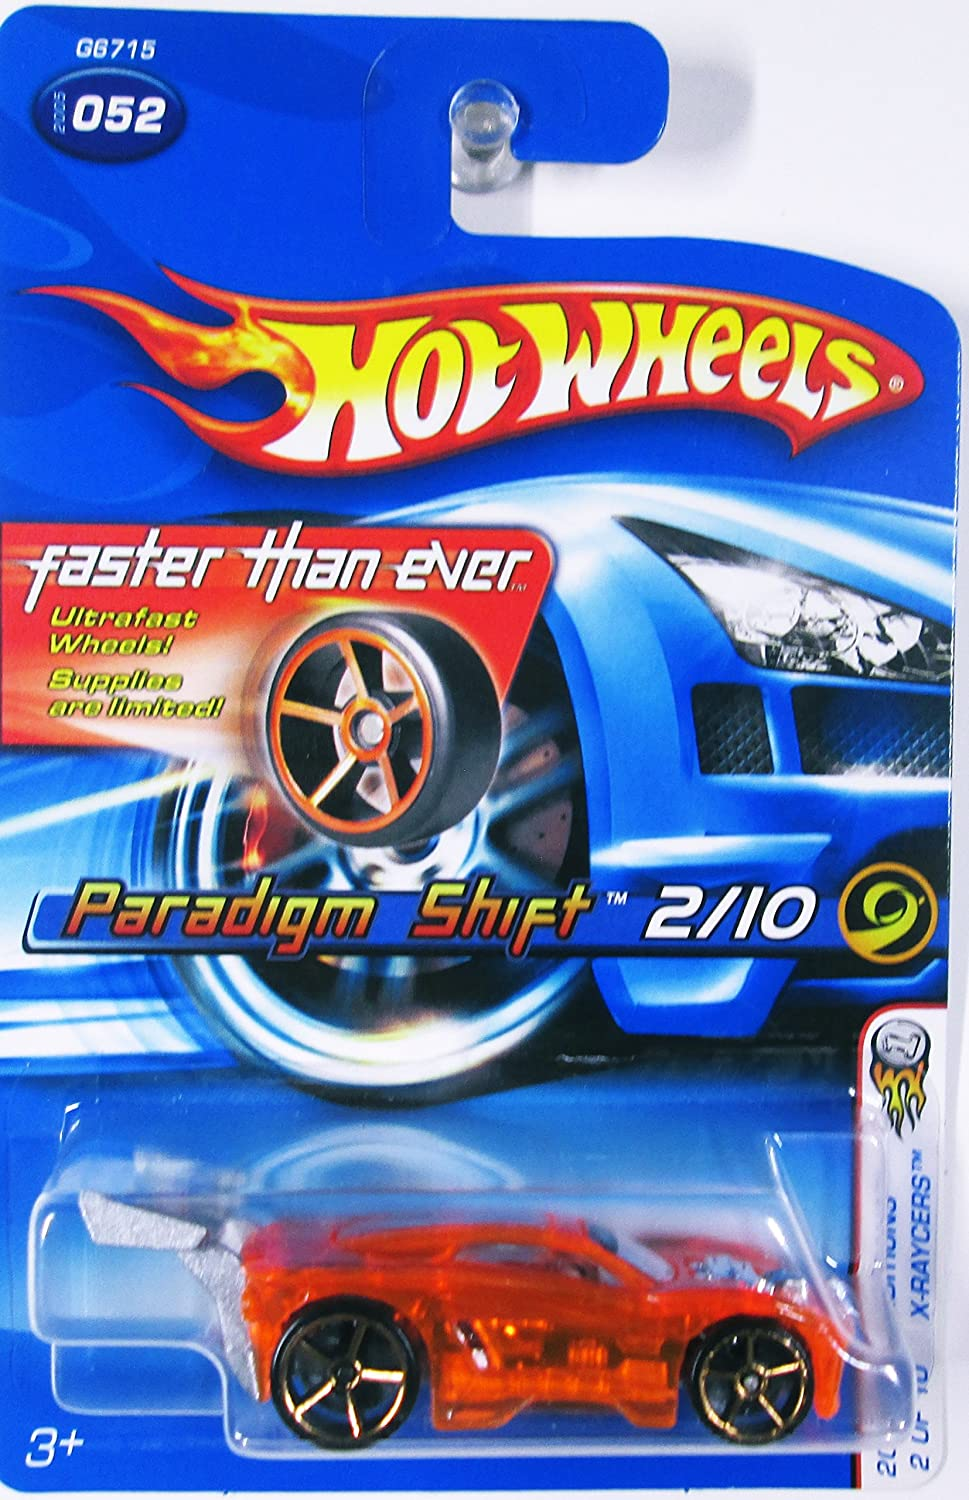 2005 First Editions Editions First X-Raycers  2 Paradigm Shift Orange Faster Than Ever Wheels  2005-52 Collectible Collector Car Mattel Hot Wheels 1:64 Scale by Hot Wheels aac850